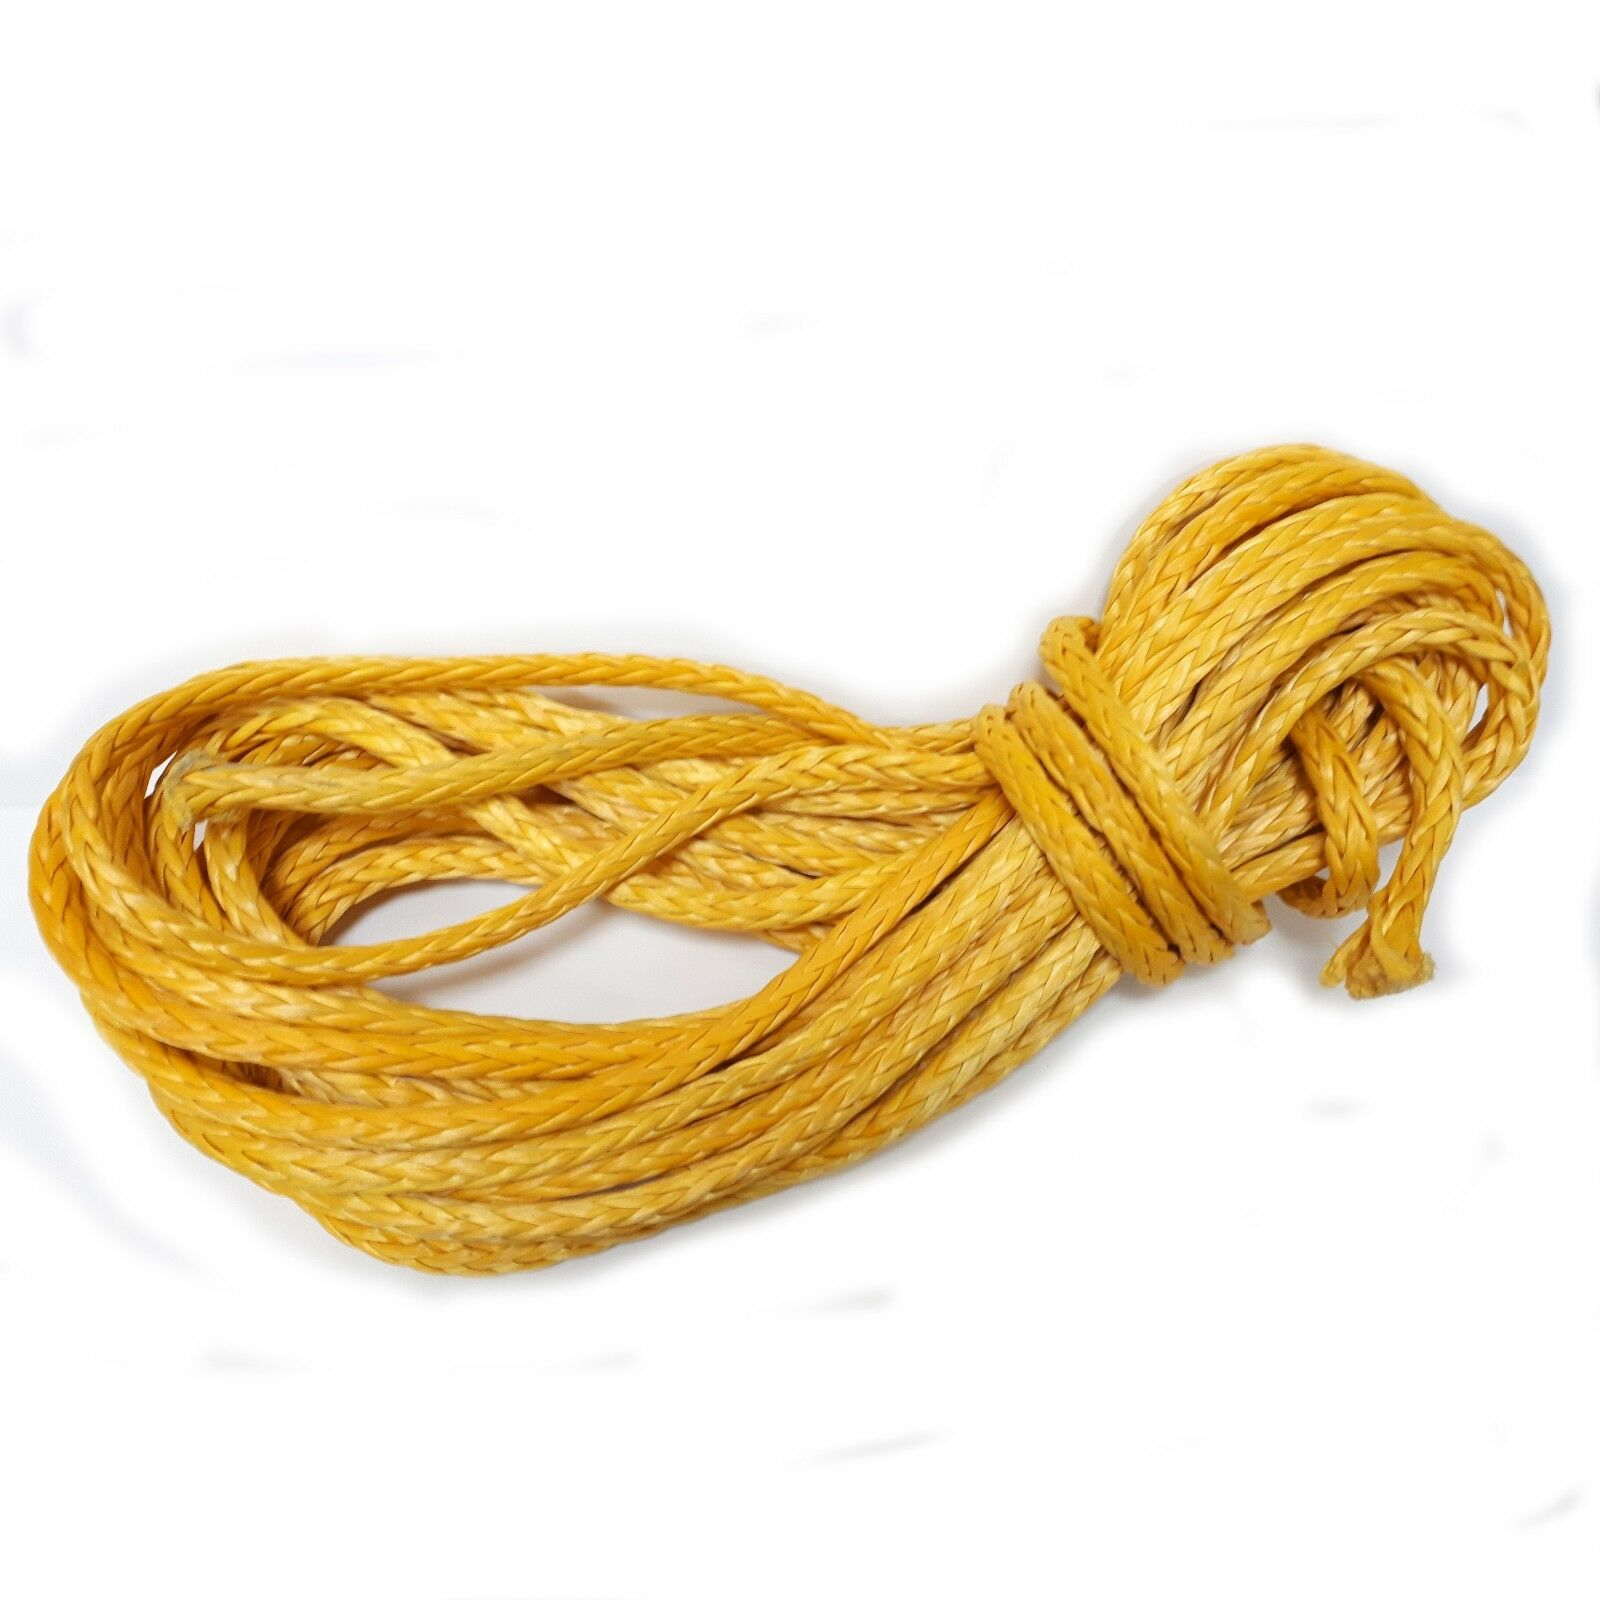 CLEARANCE  DISCOUNTED ROPE  12 Strand Dyneema. Super strong, various